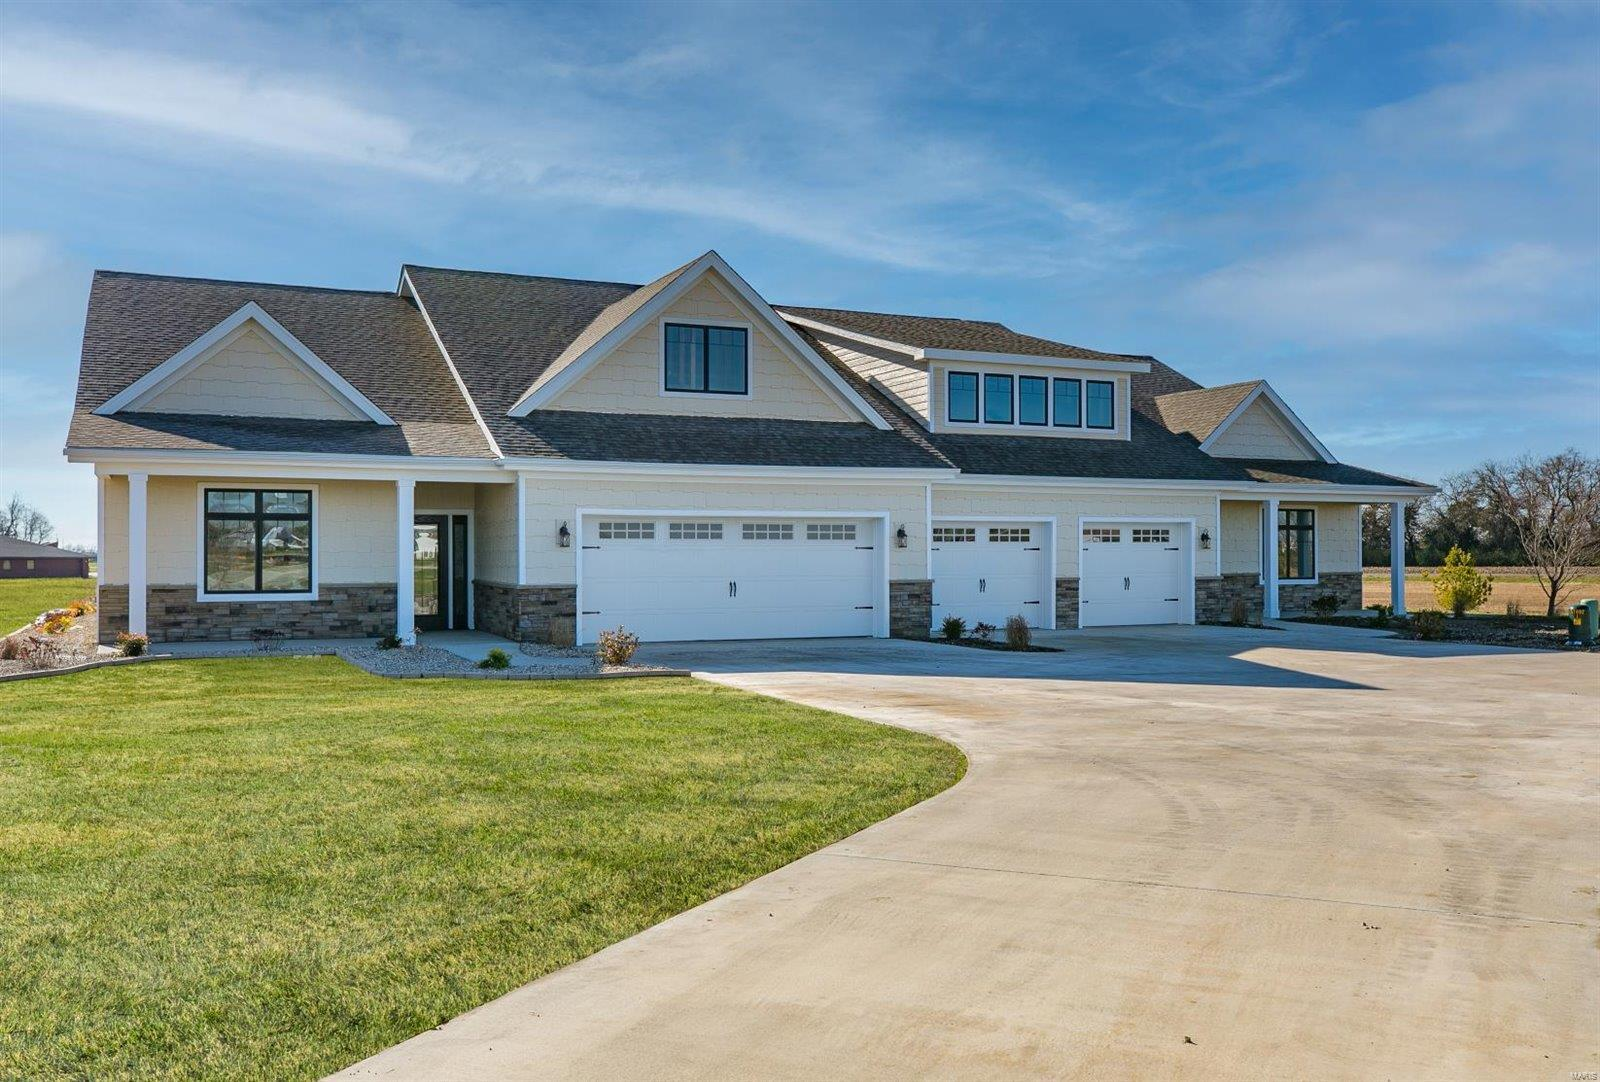 2033 Serenade Property Photo - Troy, IL real estate listing